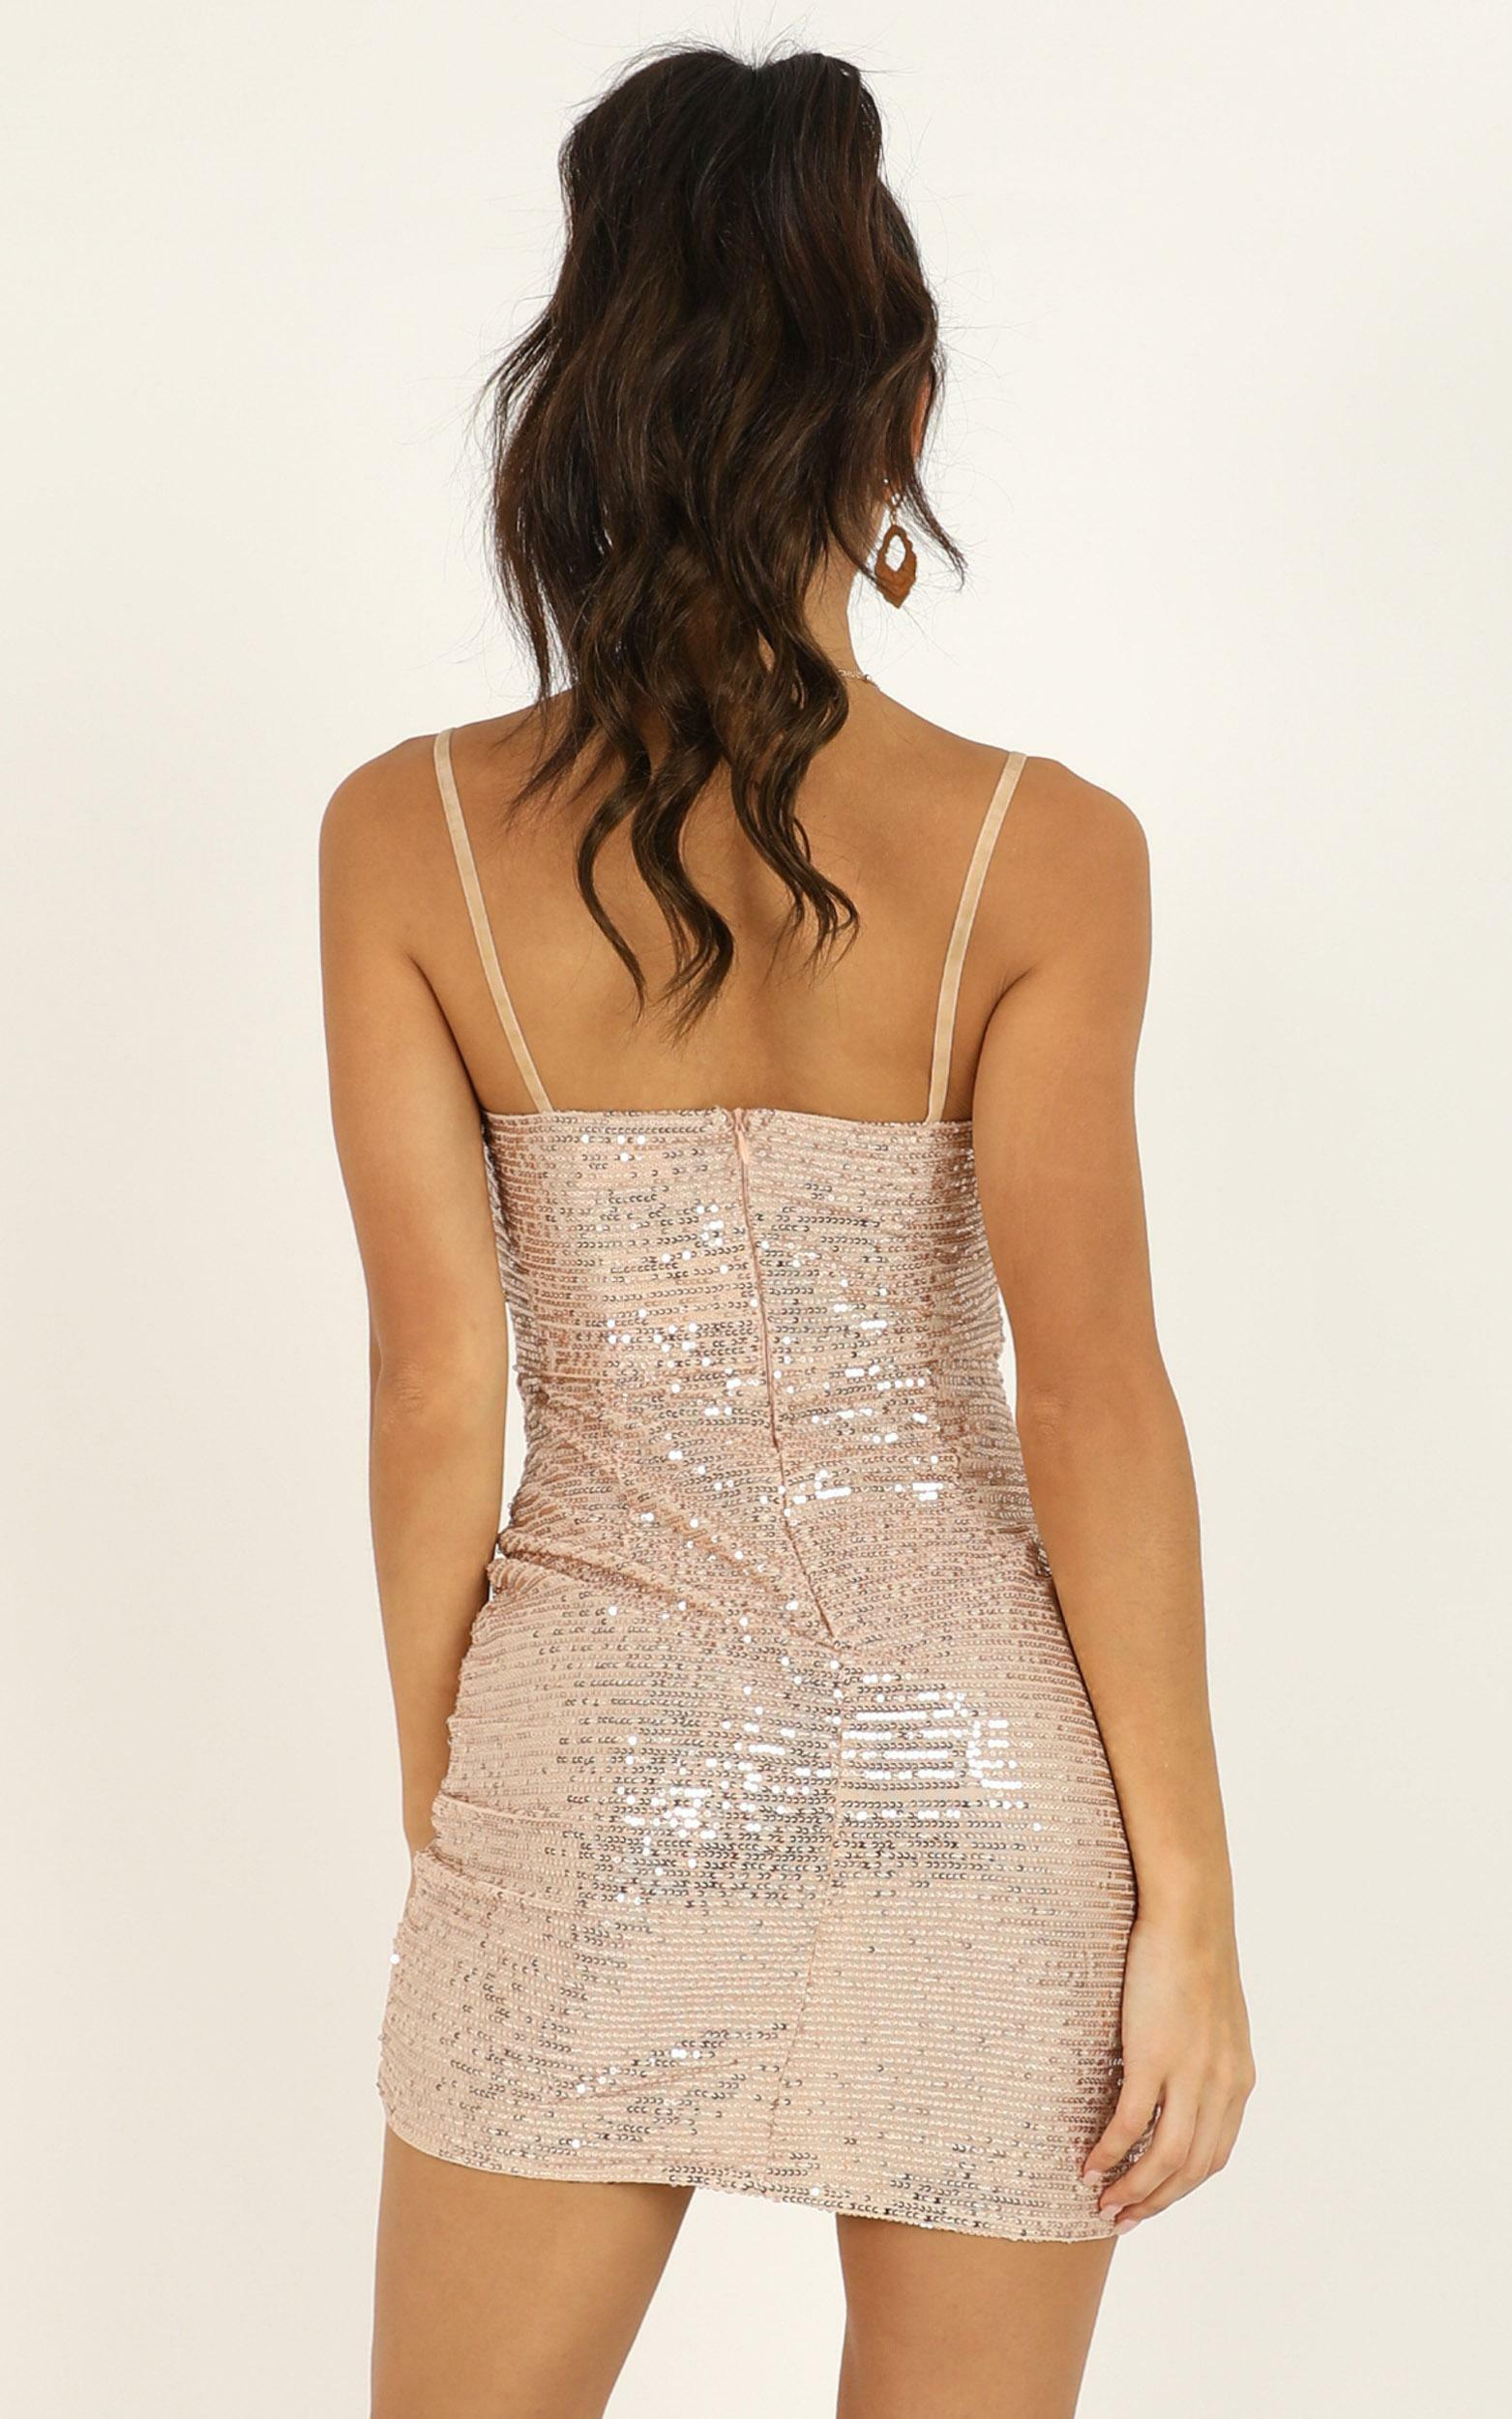 Lip Lock Dress in rose gold sequin - 20 (XXXXL), Rose Gold, hi-res image number null